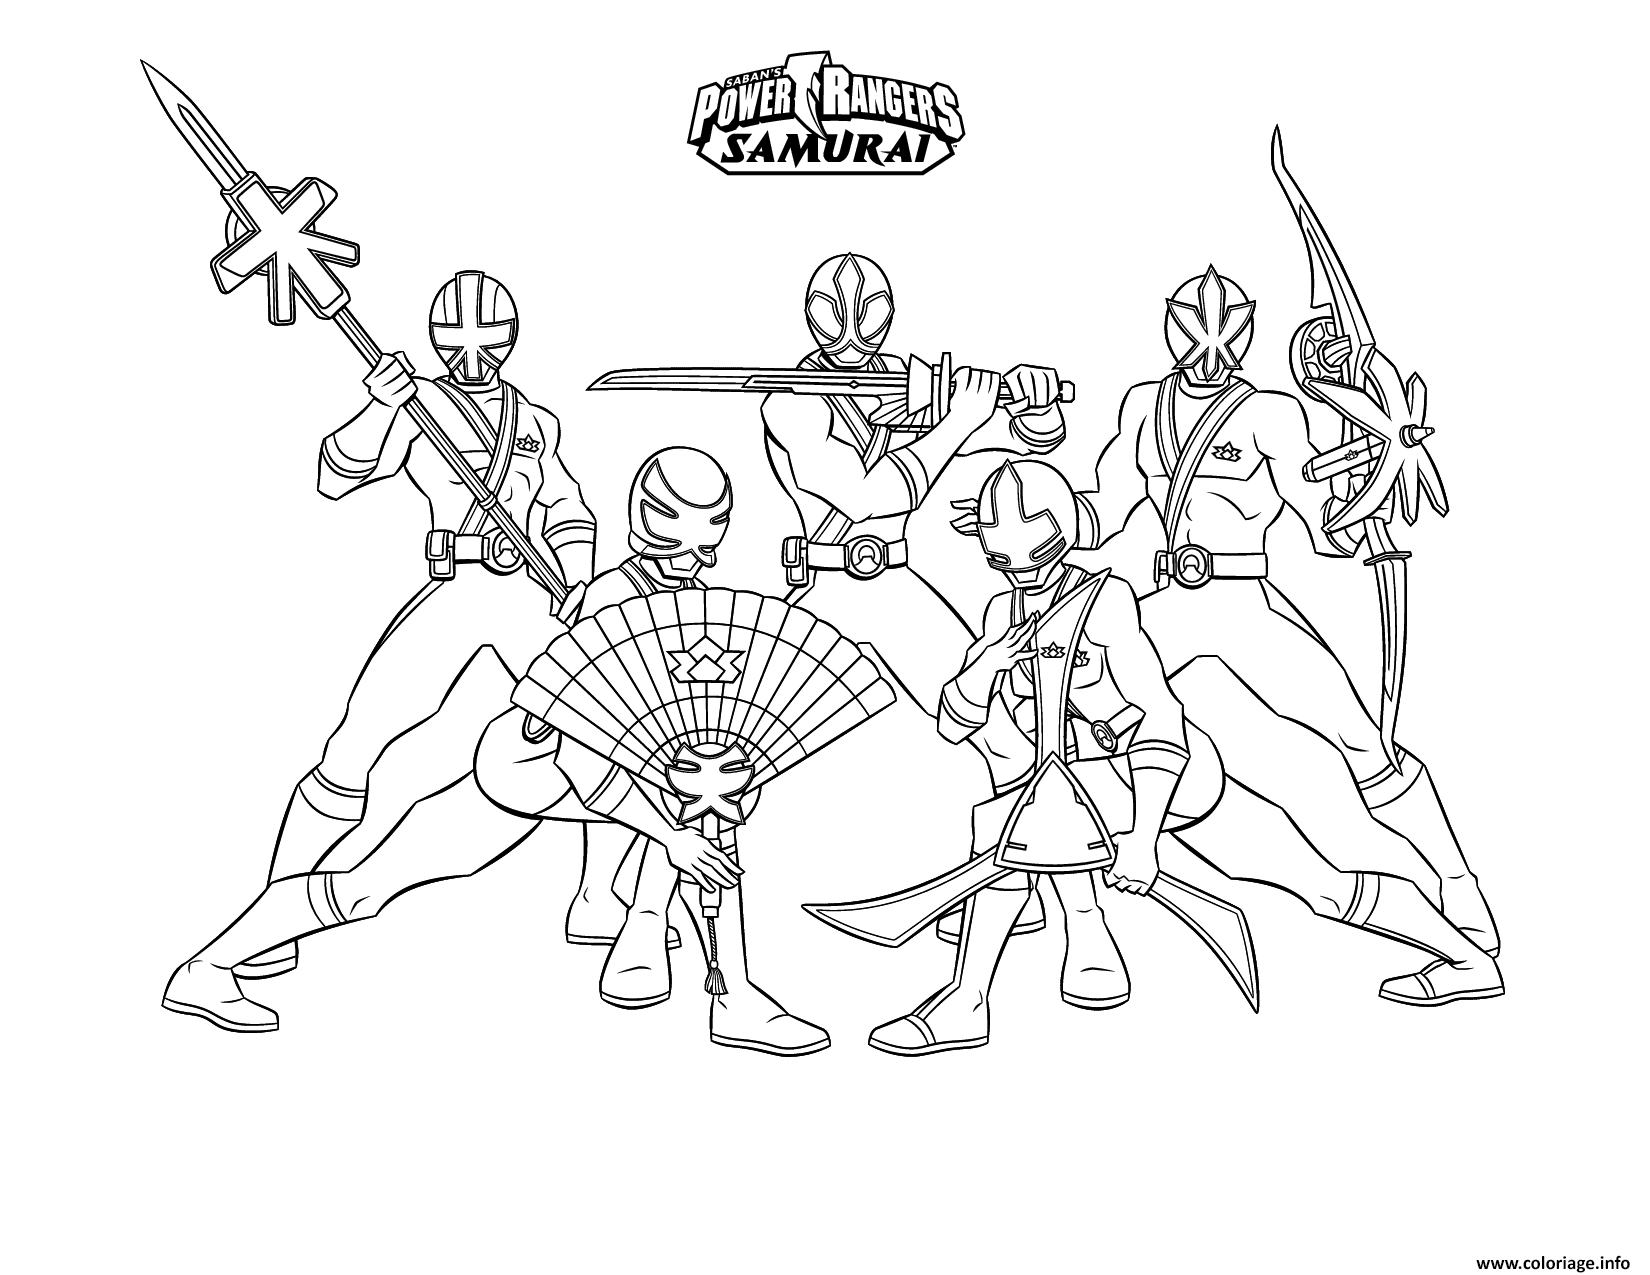 Unique Coloriage Powers Rangers Samurai A Imprimer